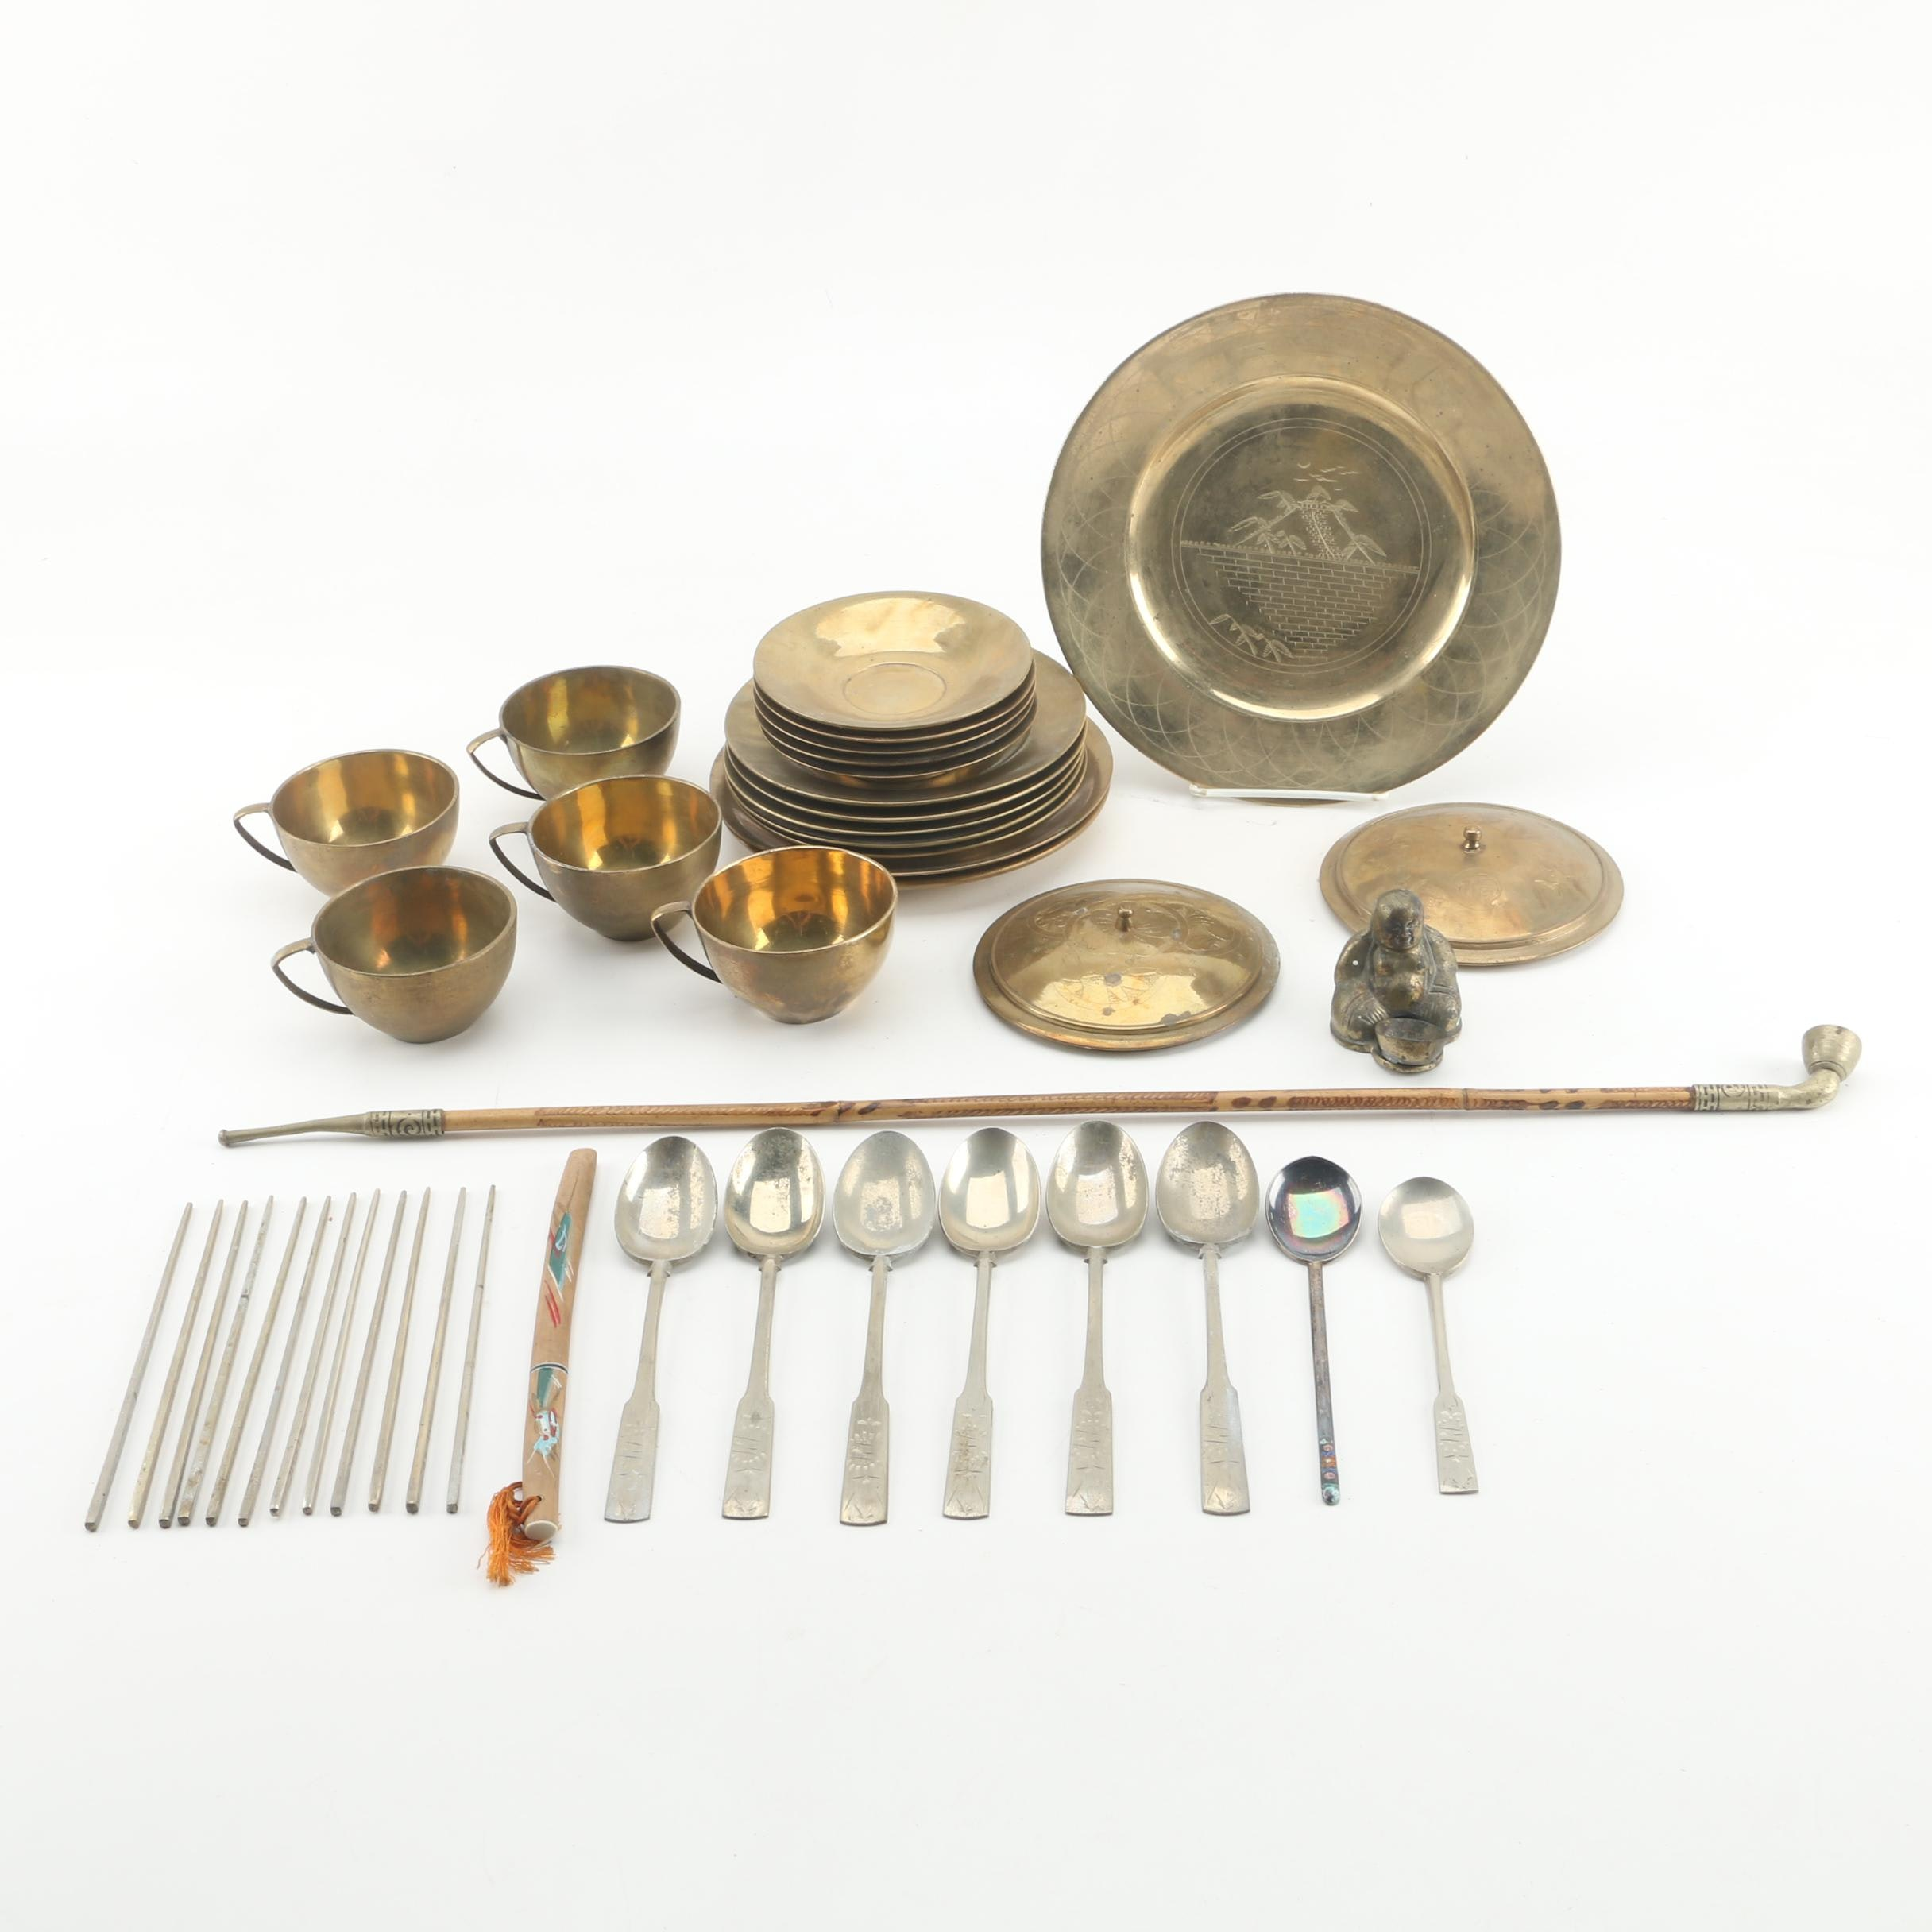 East Asian Brass Cups, Saucers, Spoons, Chopsticks, Budai Figurine, and More